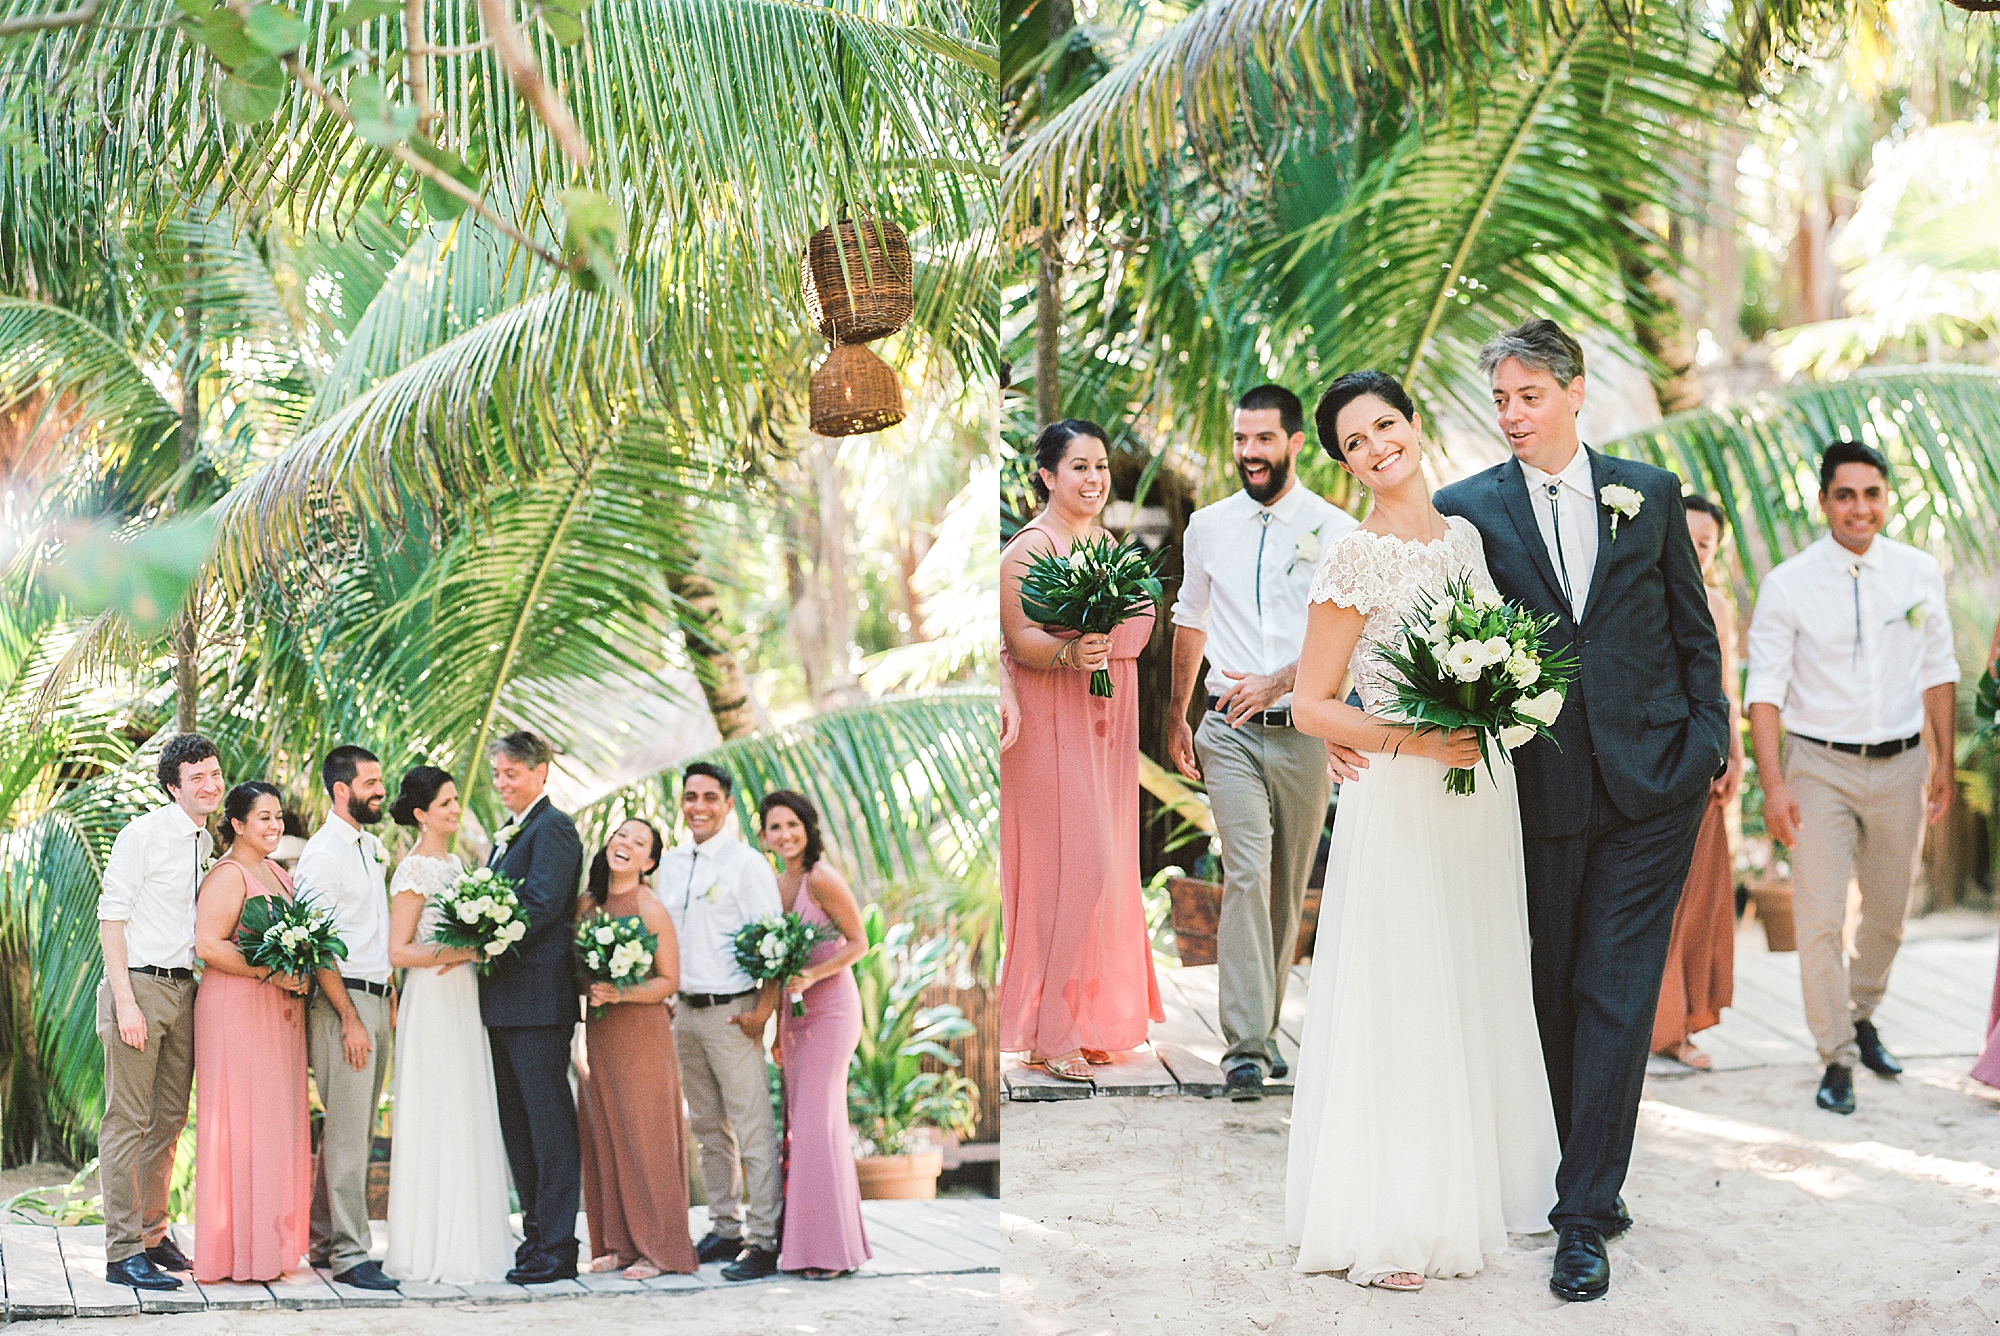 Stylish and Candid Destination Film Wedding Photography in Tulum Mexico by Magdalena Studios 0015